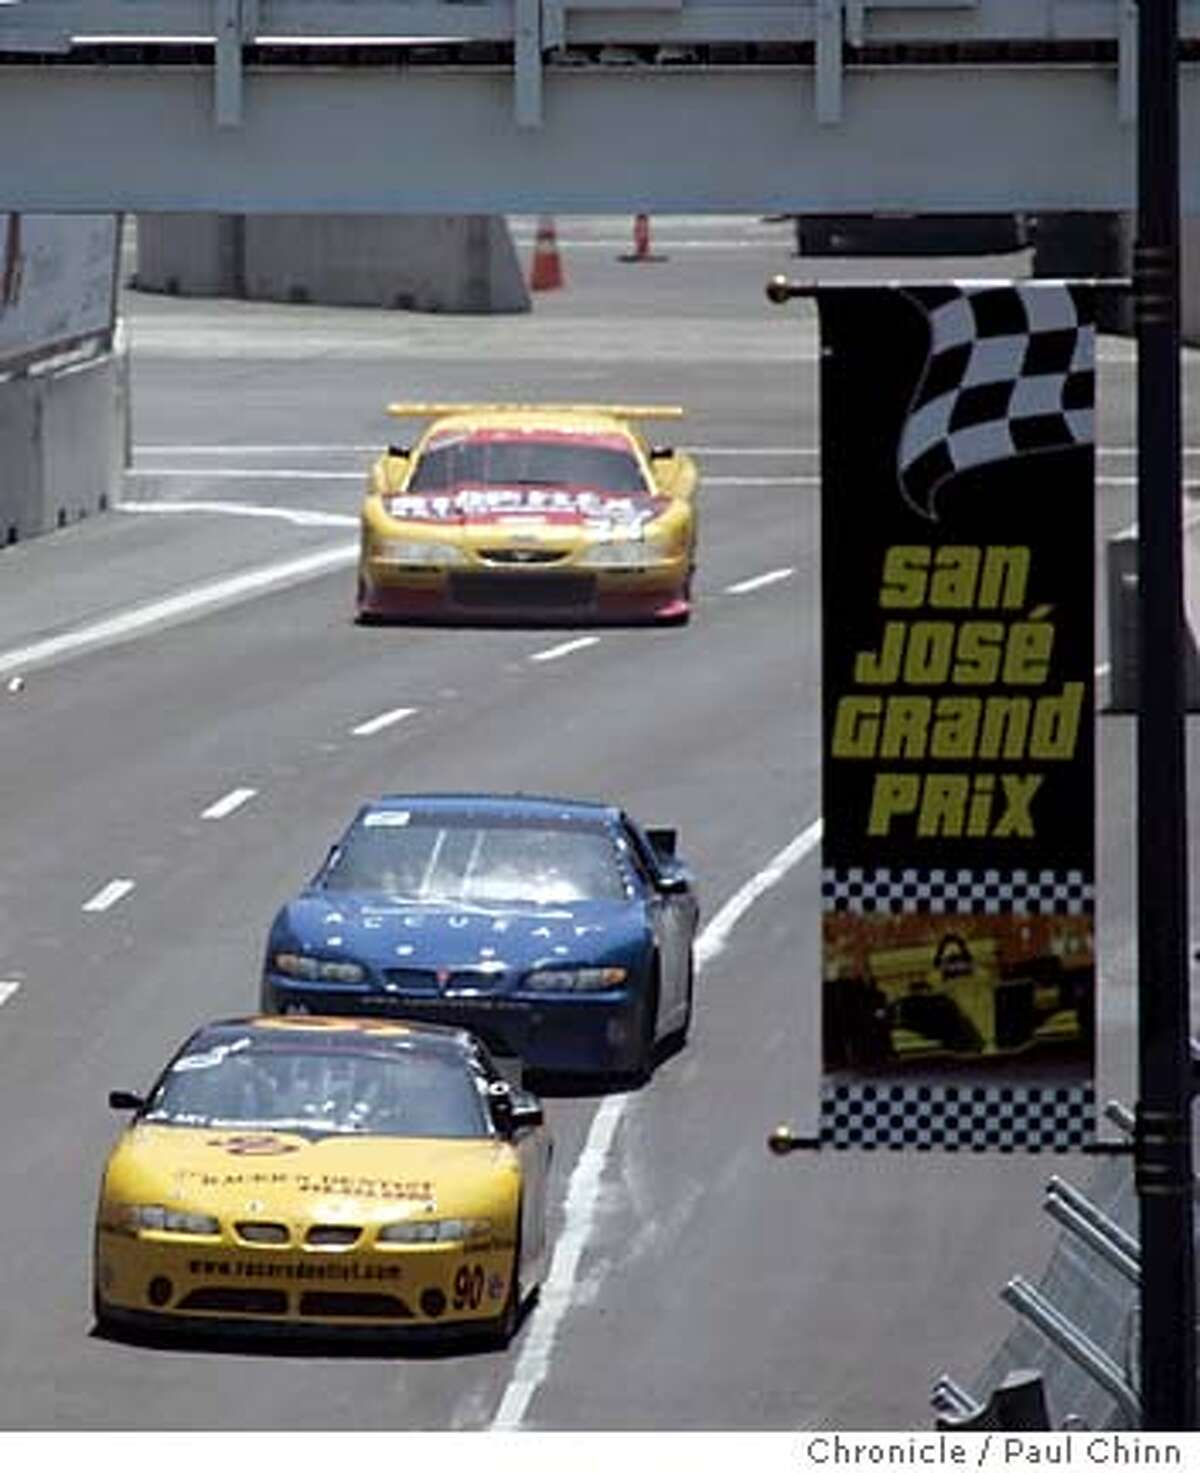 Trans-Am cars head up Almaden Blvd. towards the hairpin turn during a practice session for a preliminary race as seen from the third floor of Adobe Systems headquarters building. Practice and qualifying sessions for the inaugural San Jose Grand Prix Champ Car racing series on 7/29/05 in San Jose, Calif. PAUL CHINN/The Chronicle